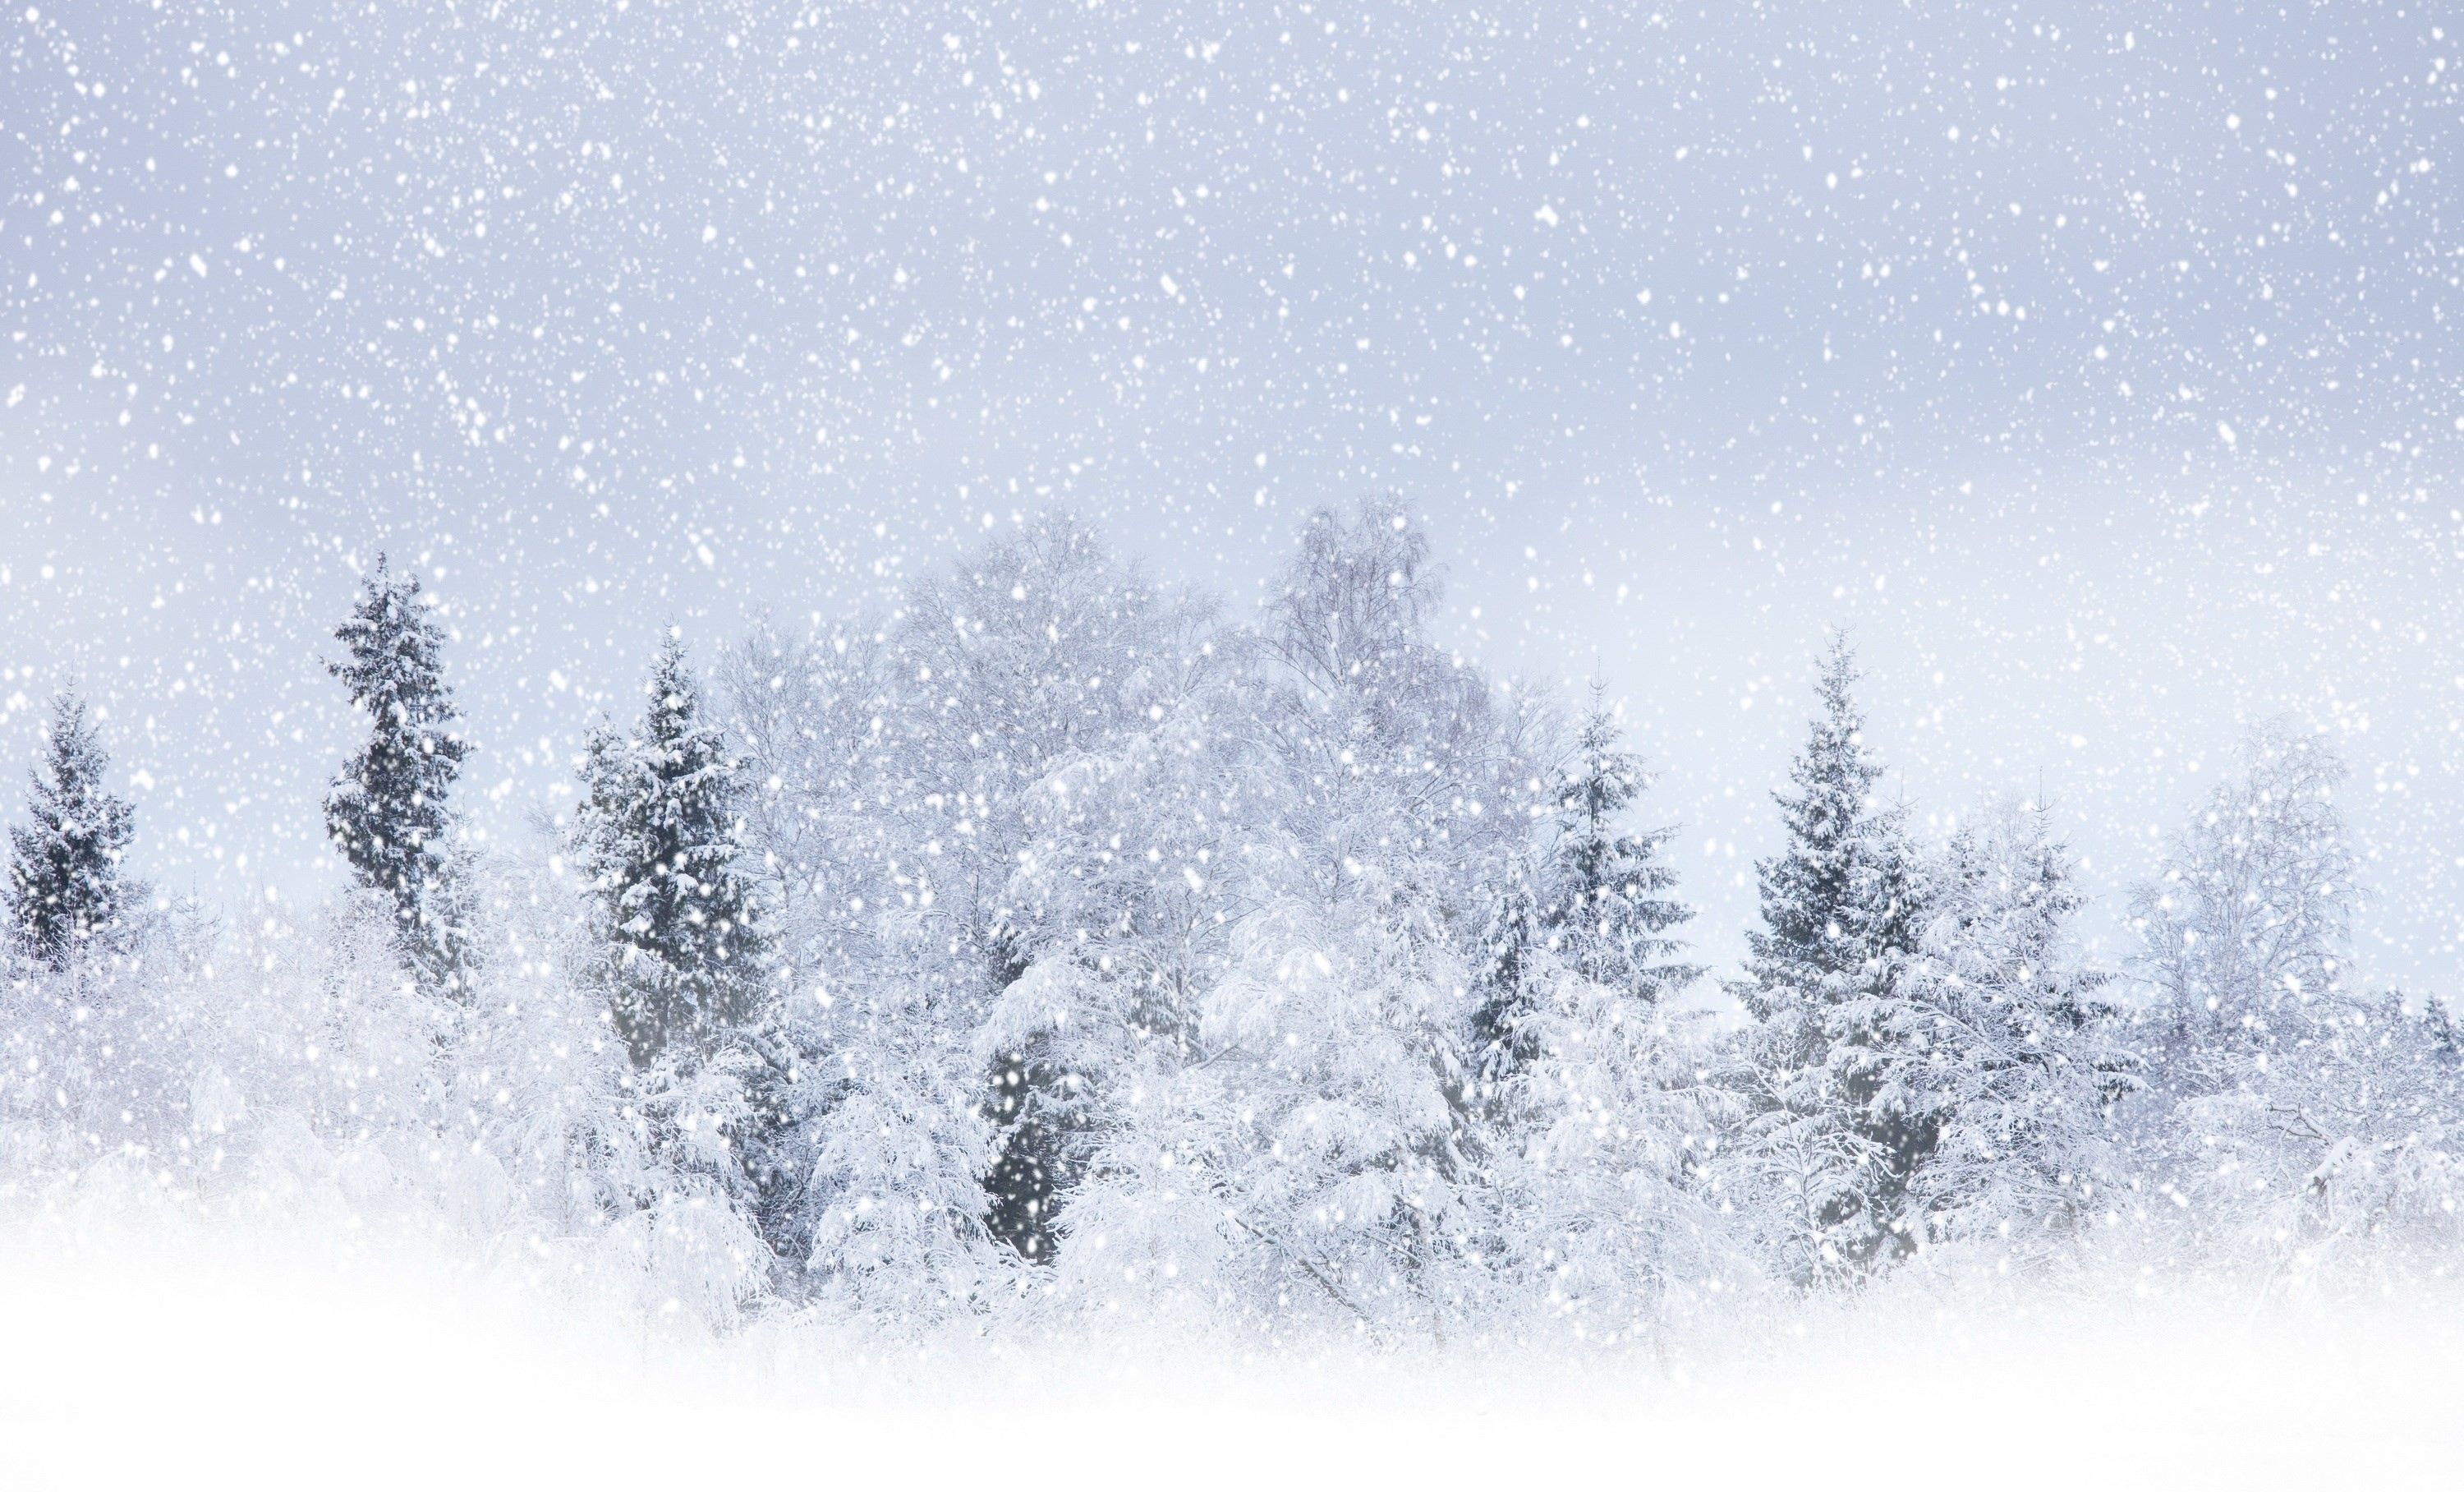 3000x1816 The article explains how to prepare yourself from winter storms and  excessive cold weather.